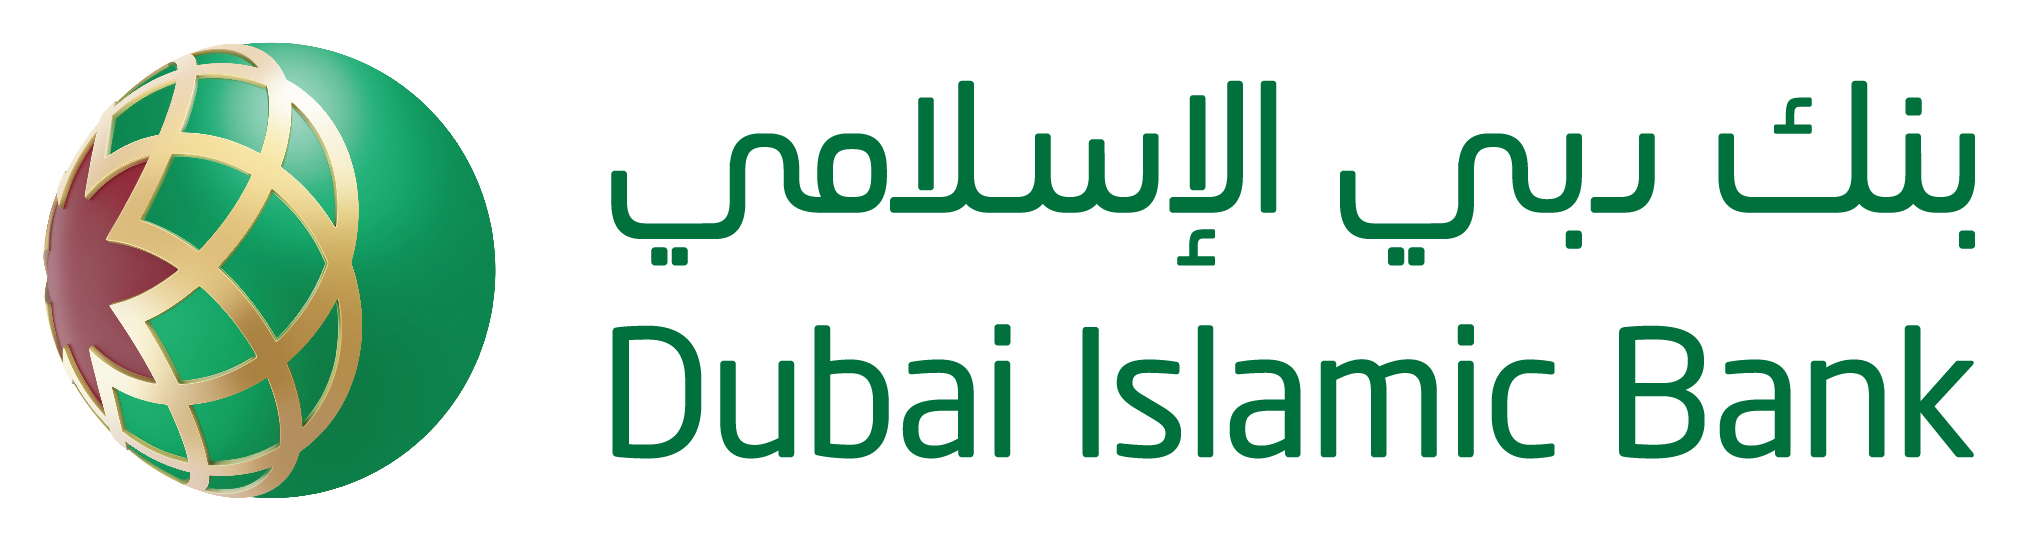 Dubai Islamic Bank - Al Islami Current Account Plus